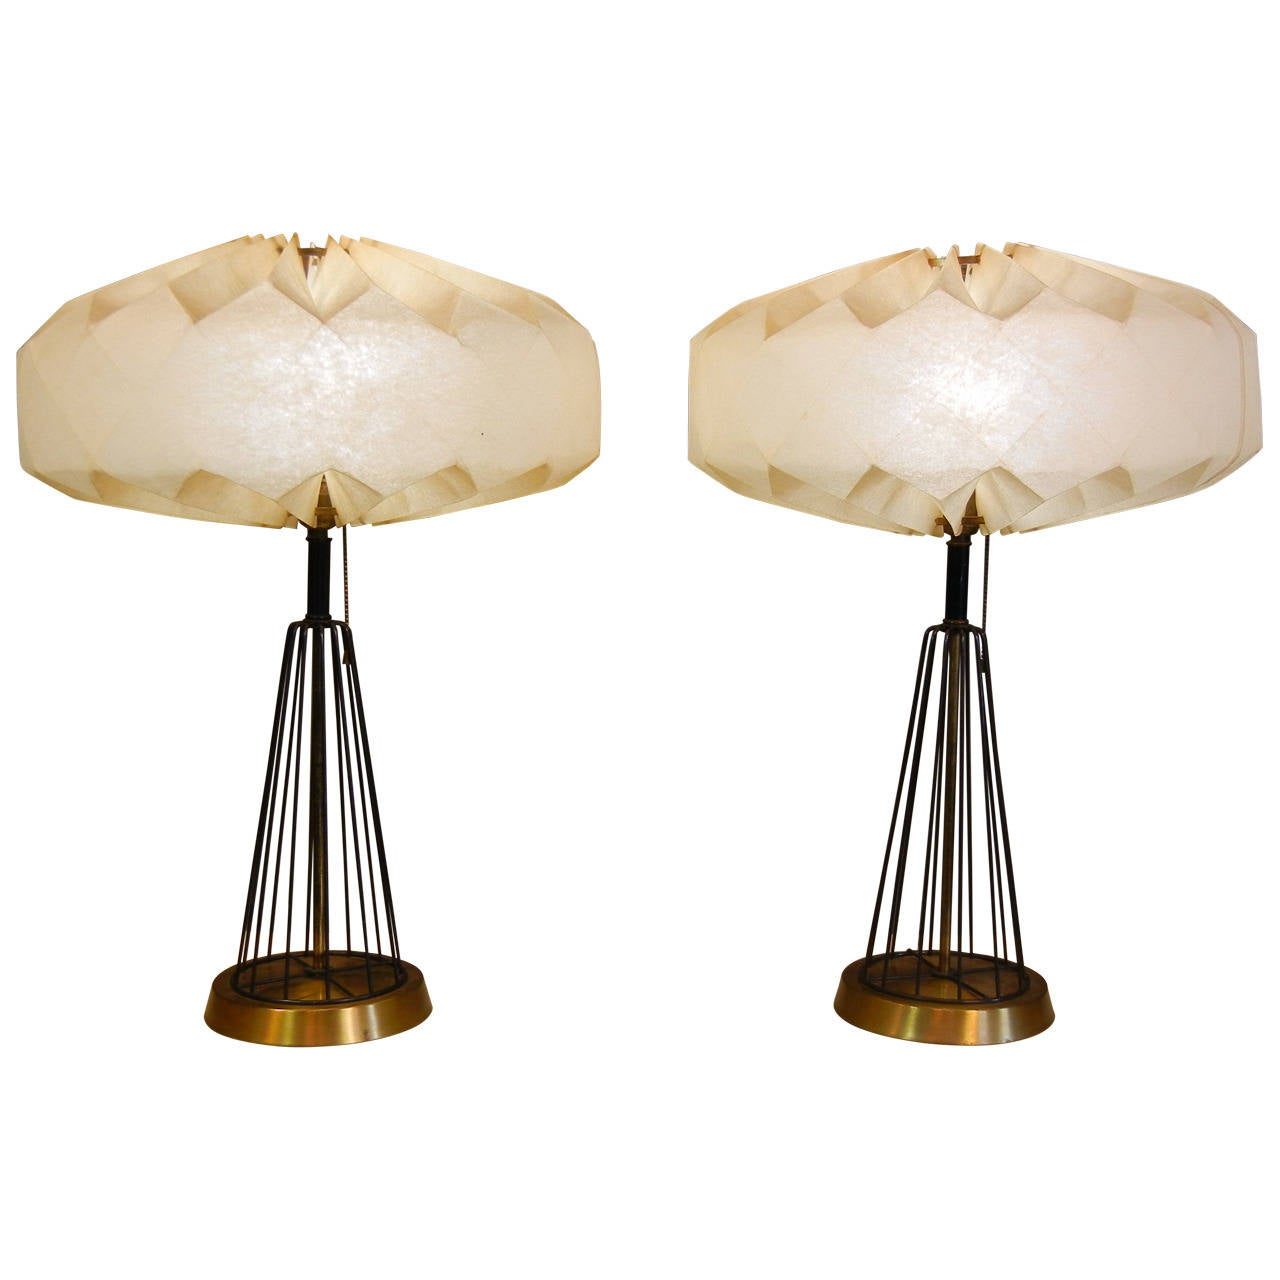 pair of mid century space age table lamps with fiberglass shades at 1stdibs. Black Bedroom Furniture Sets. Home Design Ideas